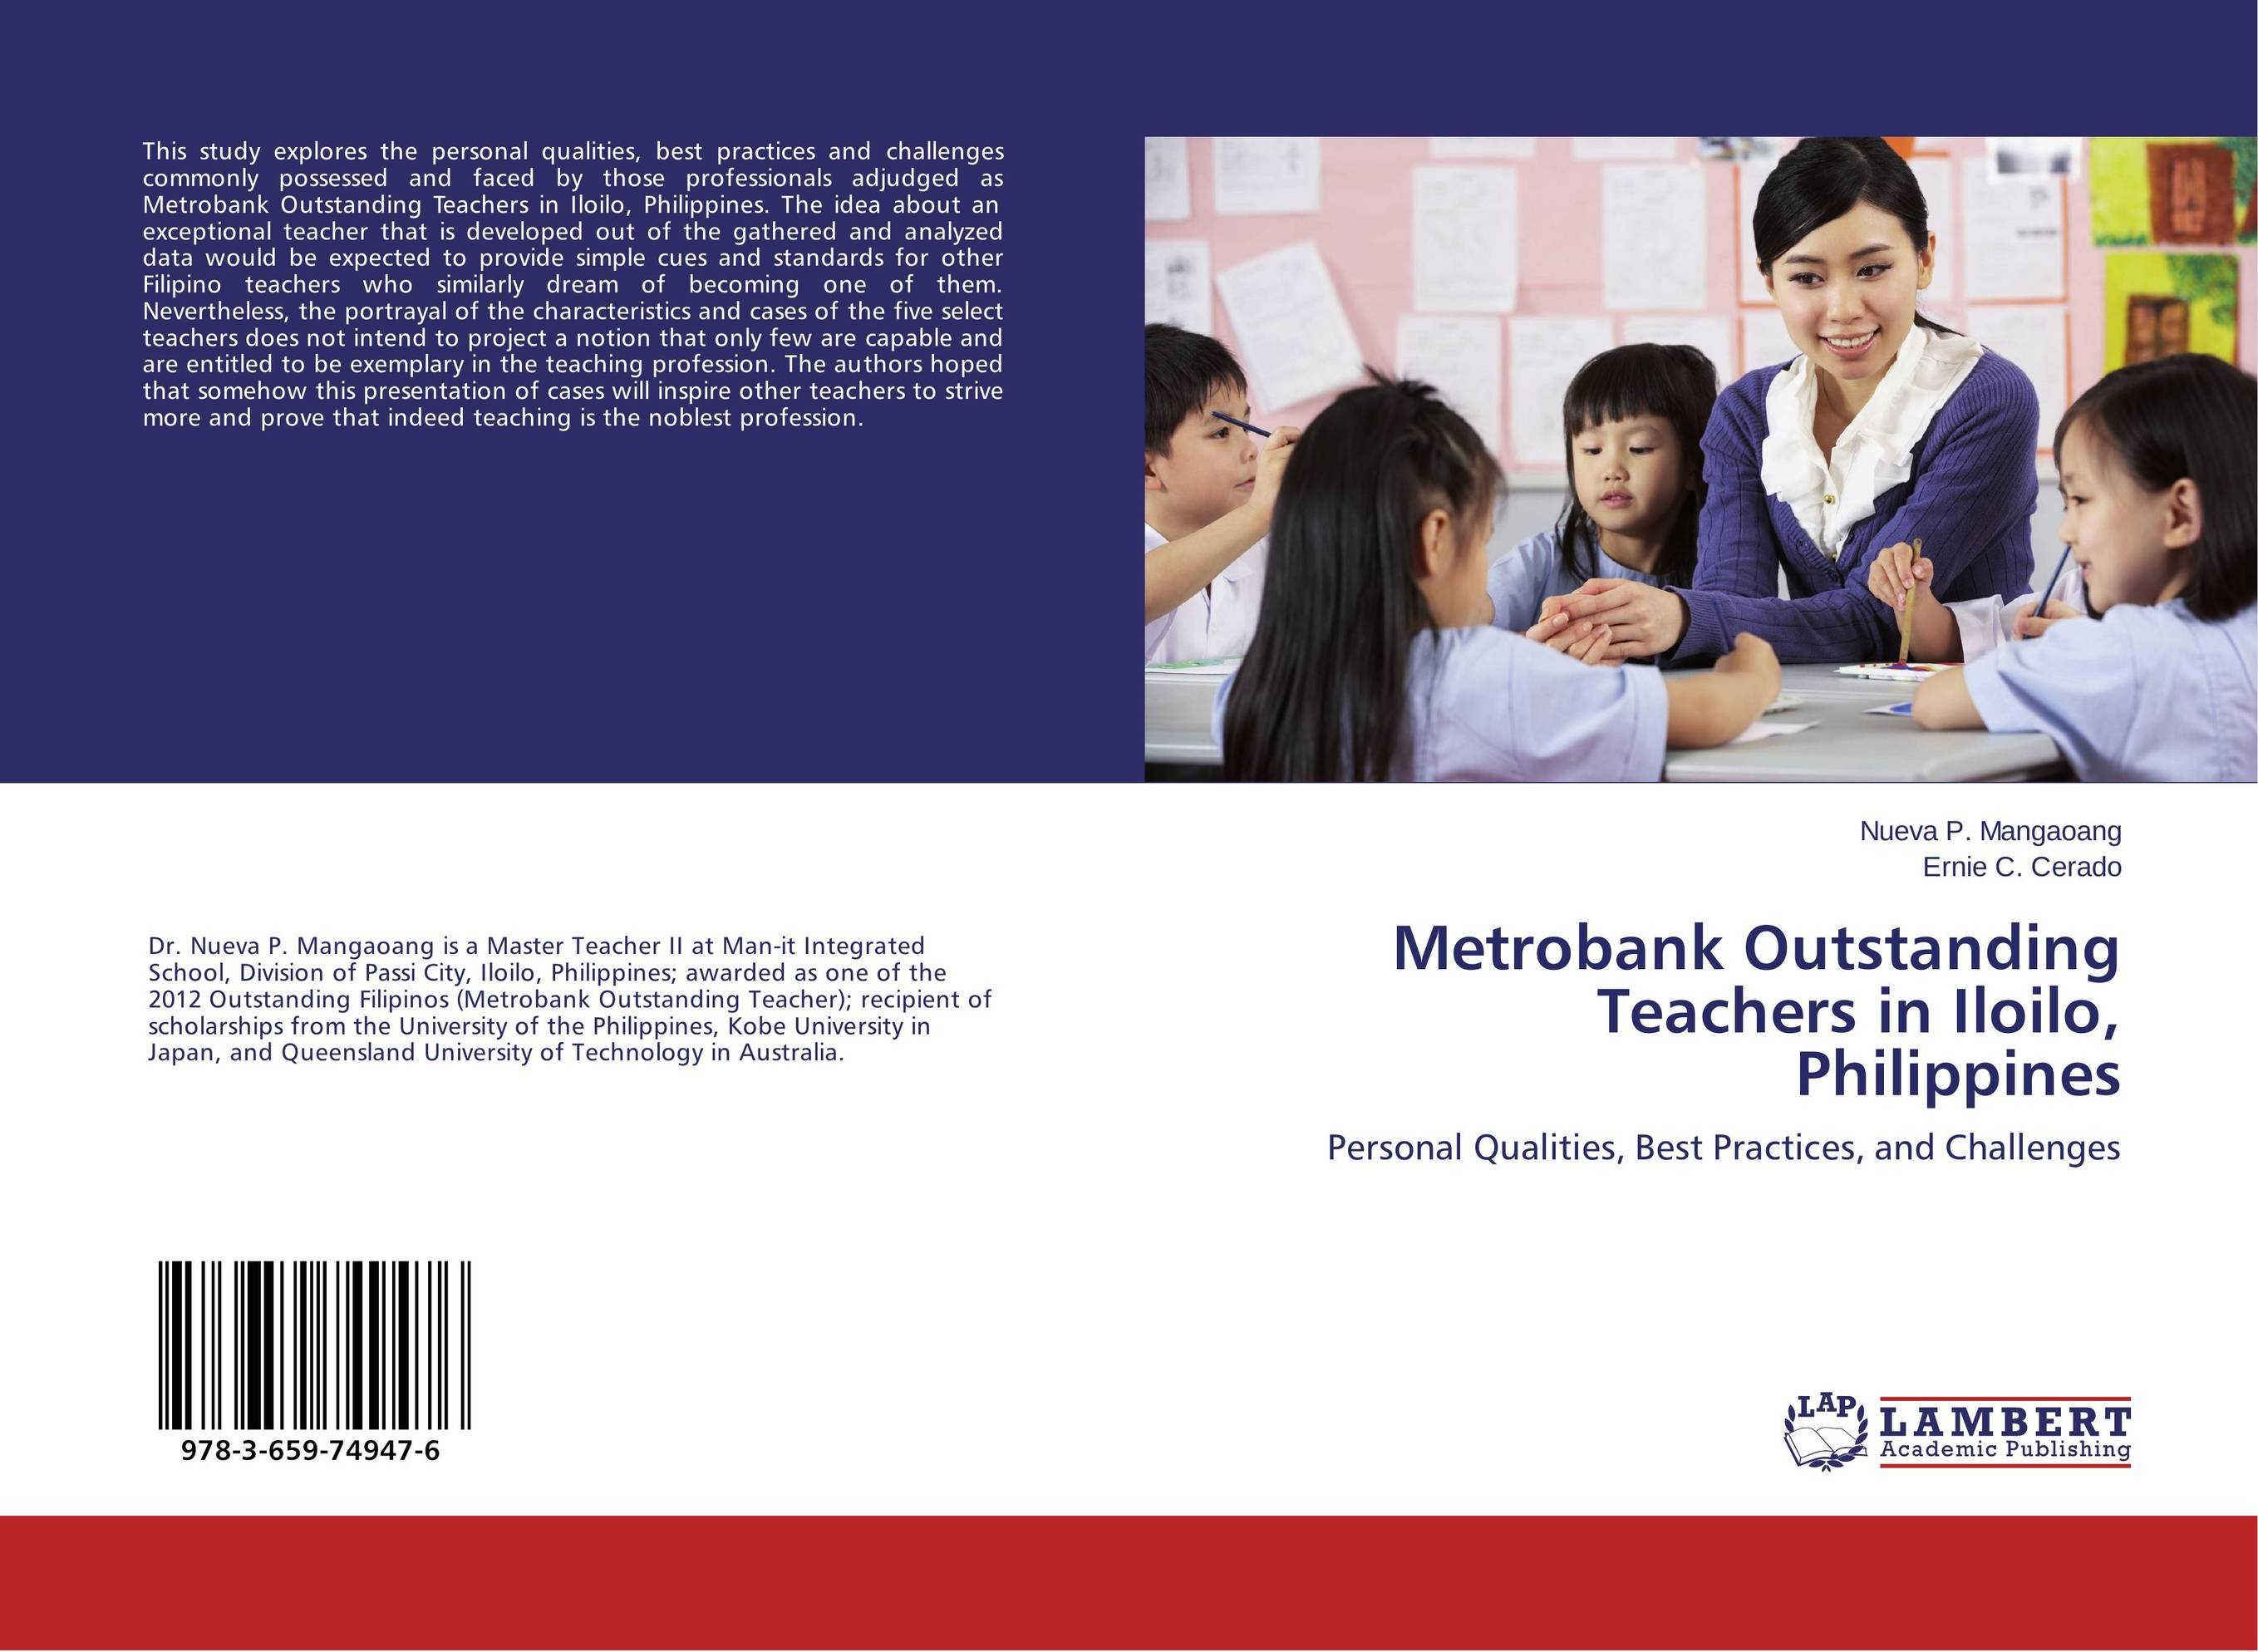 Metrobank Outstanding Teachers in Iloilo, Philippines